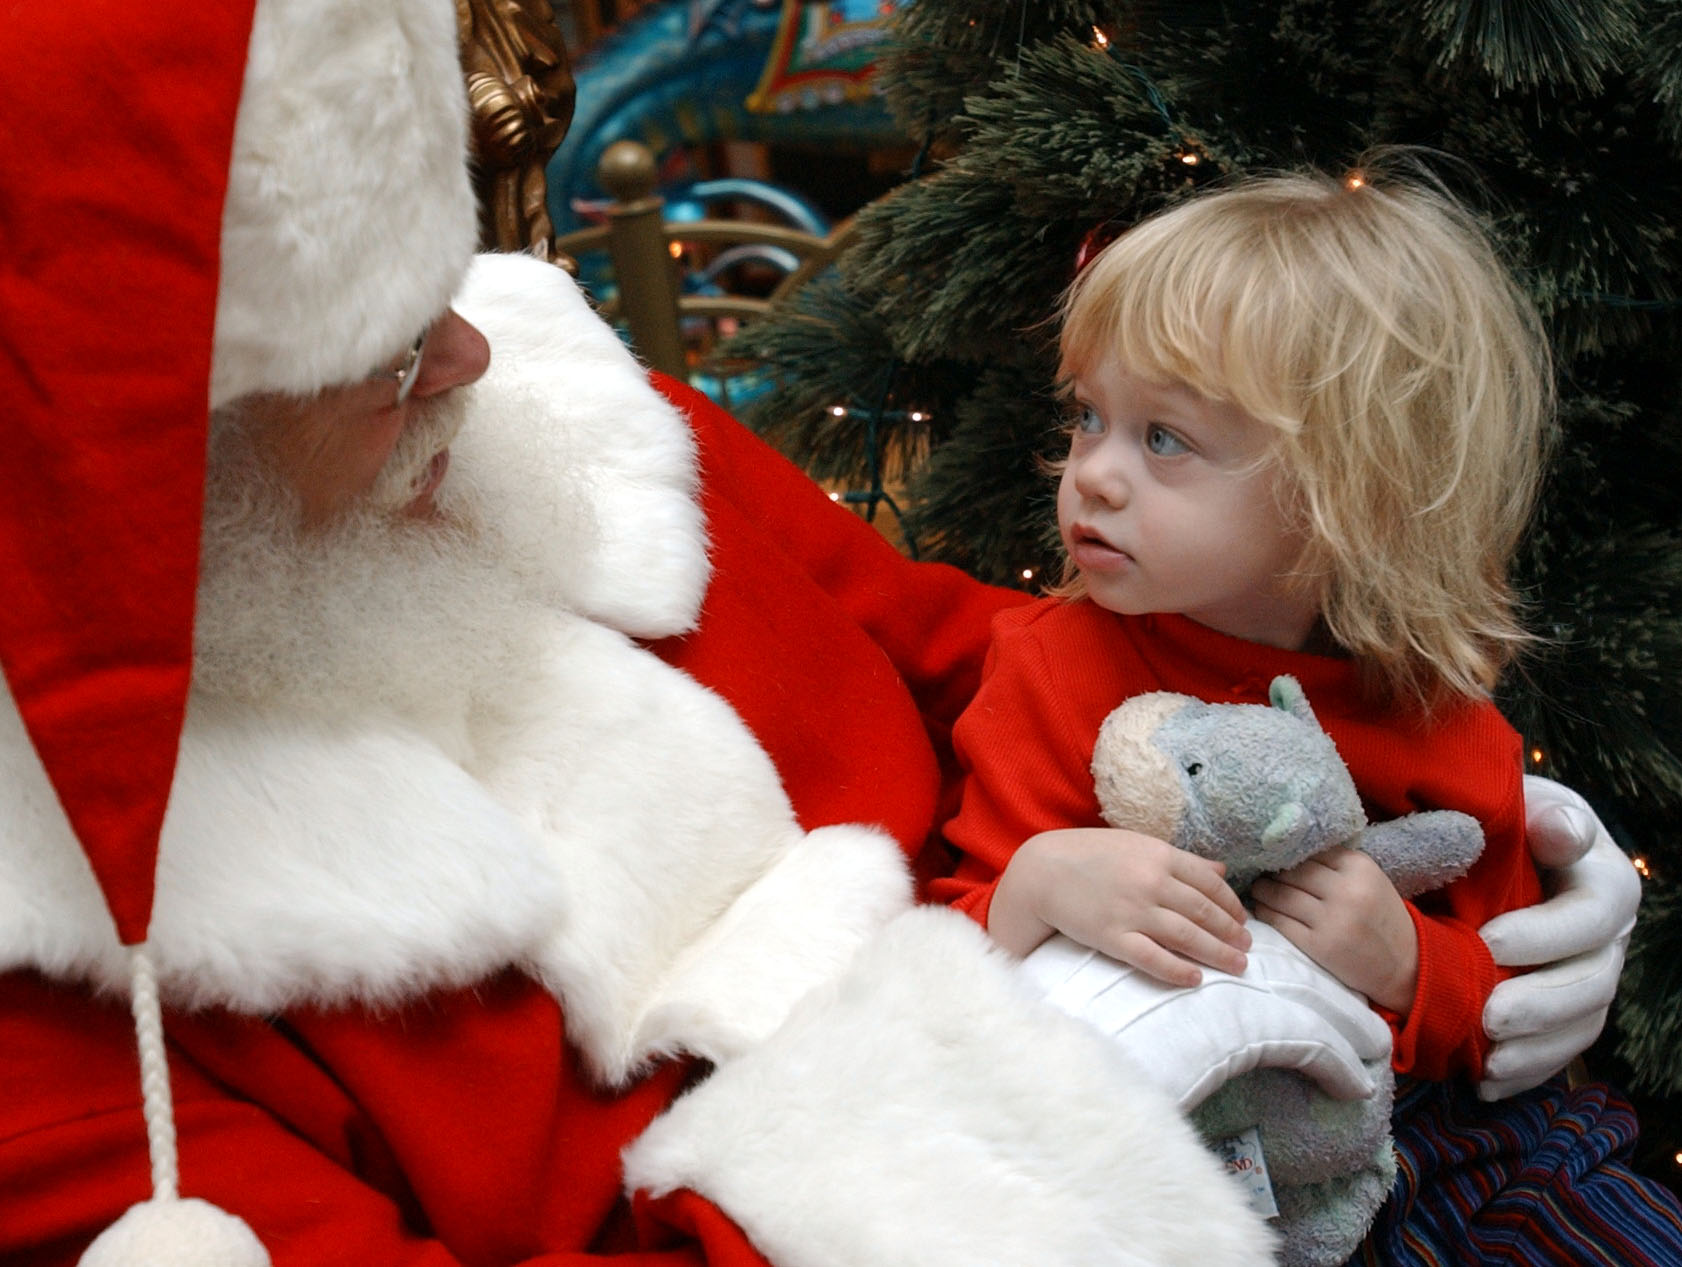 santa claus chats w/ 2 & 1/2 yr old emma baker-terhaar of snyder ,ny in  food court at boulevard mall, ---photo by ronald j. colleran/11/15/03